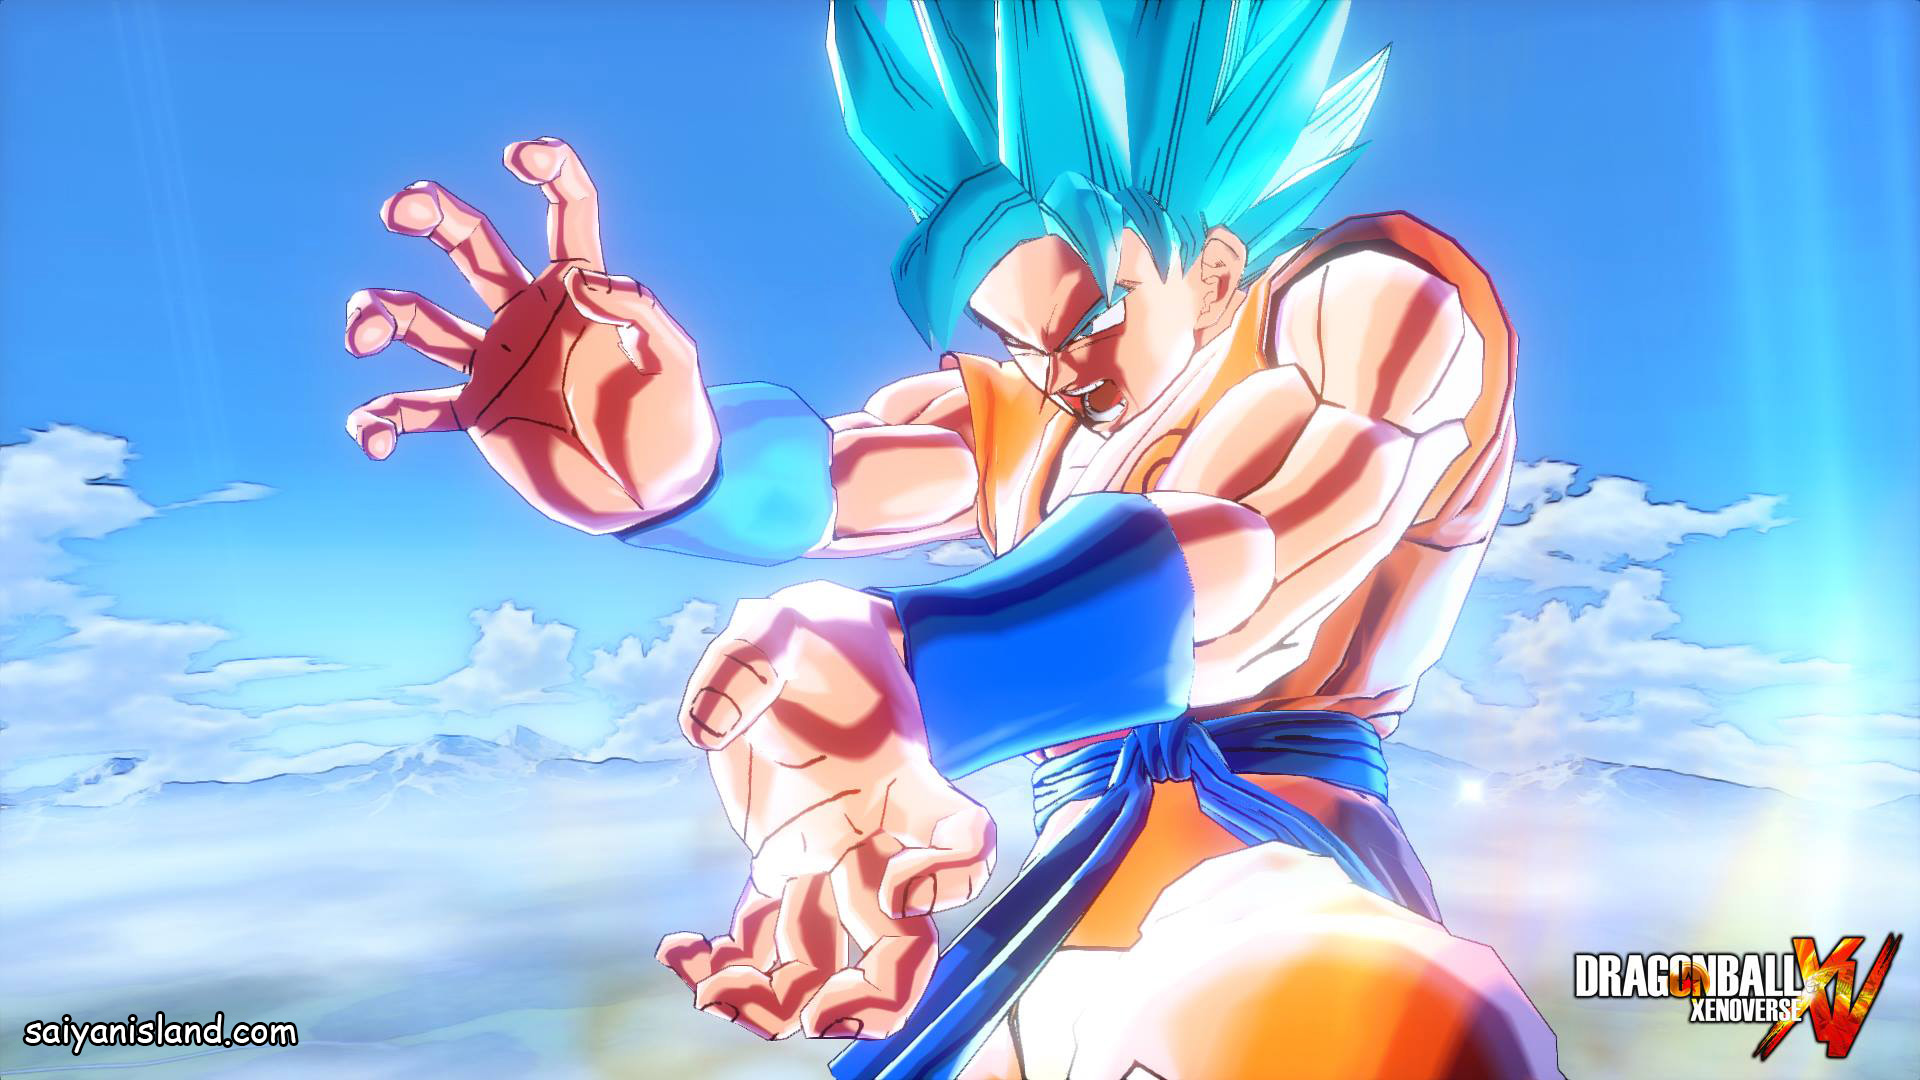 1920x1080px-Dragon-Ball-Xenoverse-wallpaper-wpc9001175